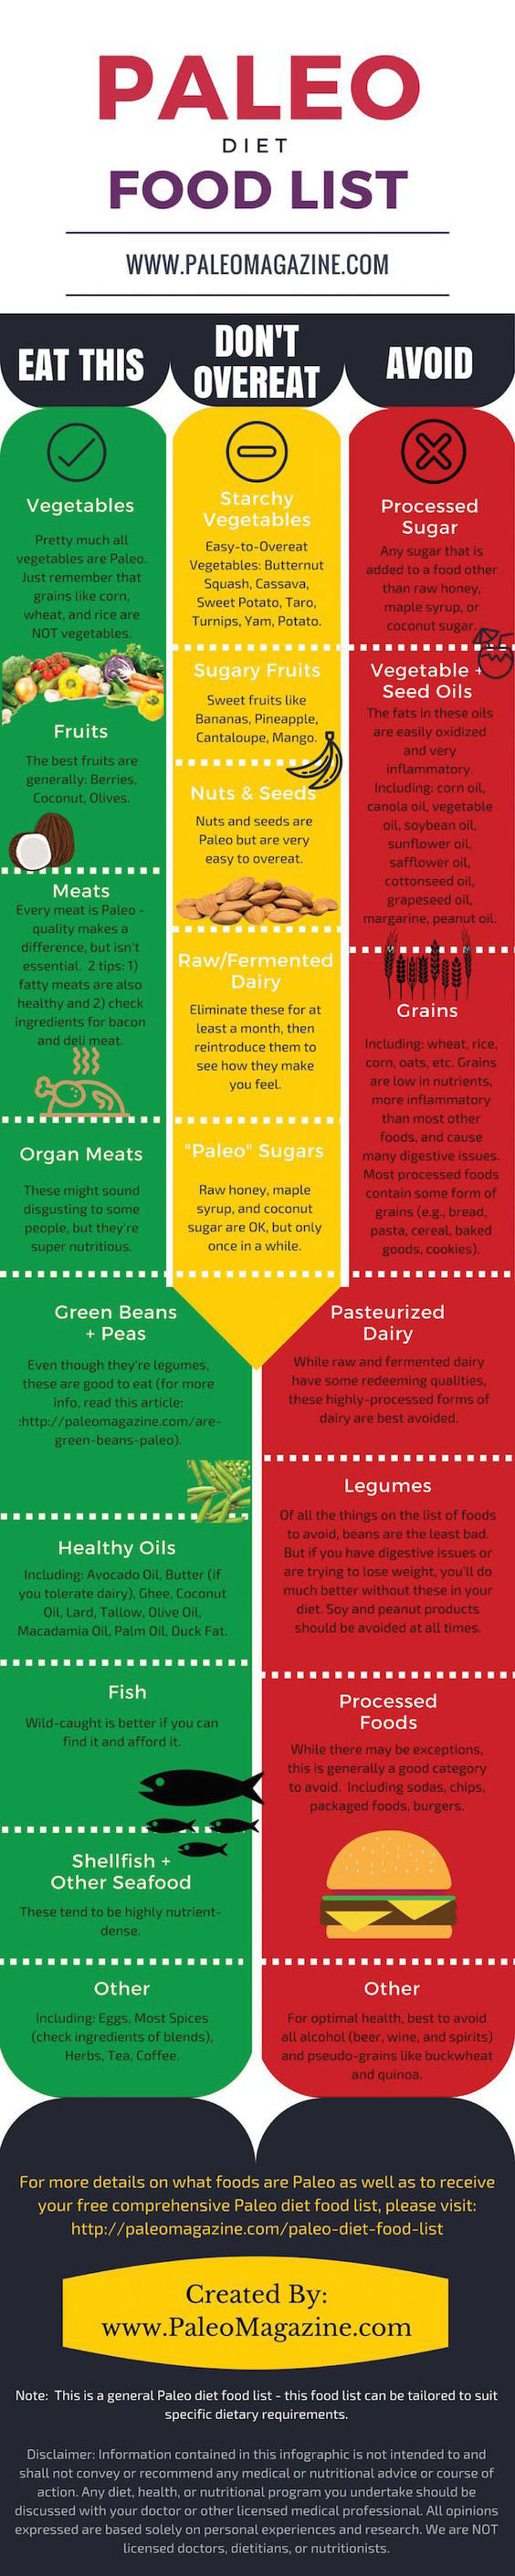 Paleo Diet Food List  Paleo Diet Food List Infographic Best Infographics